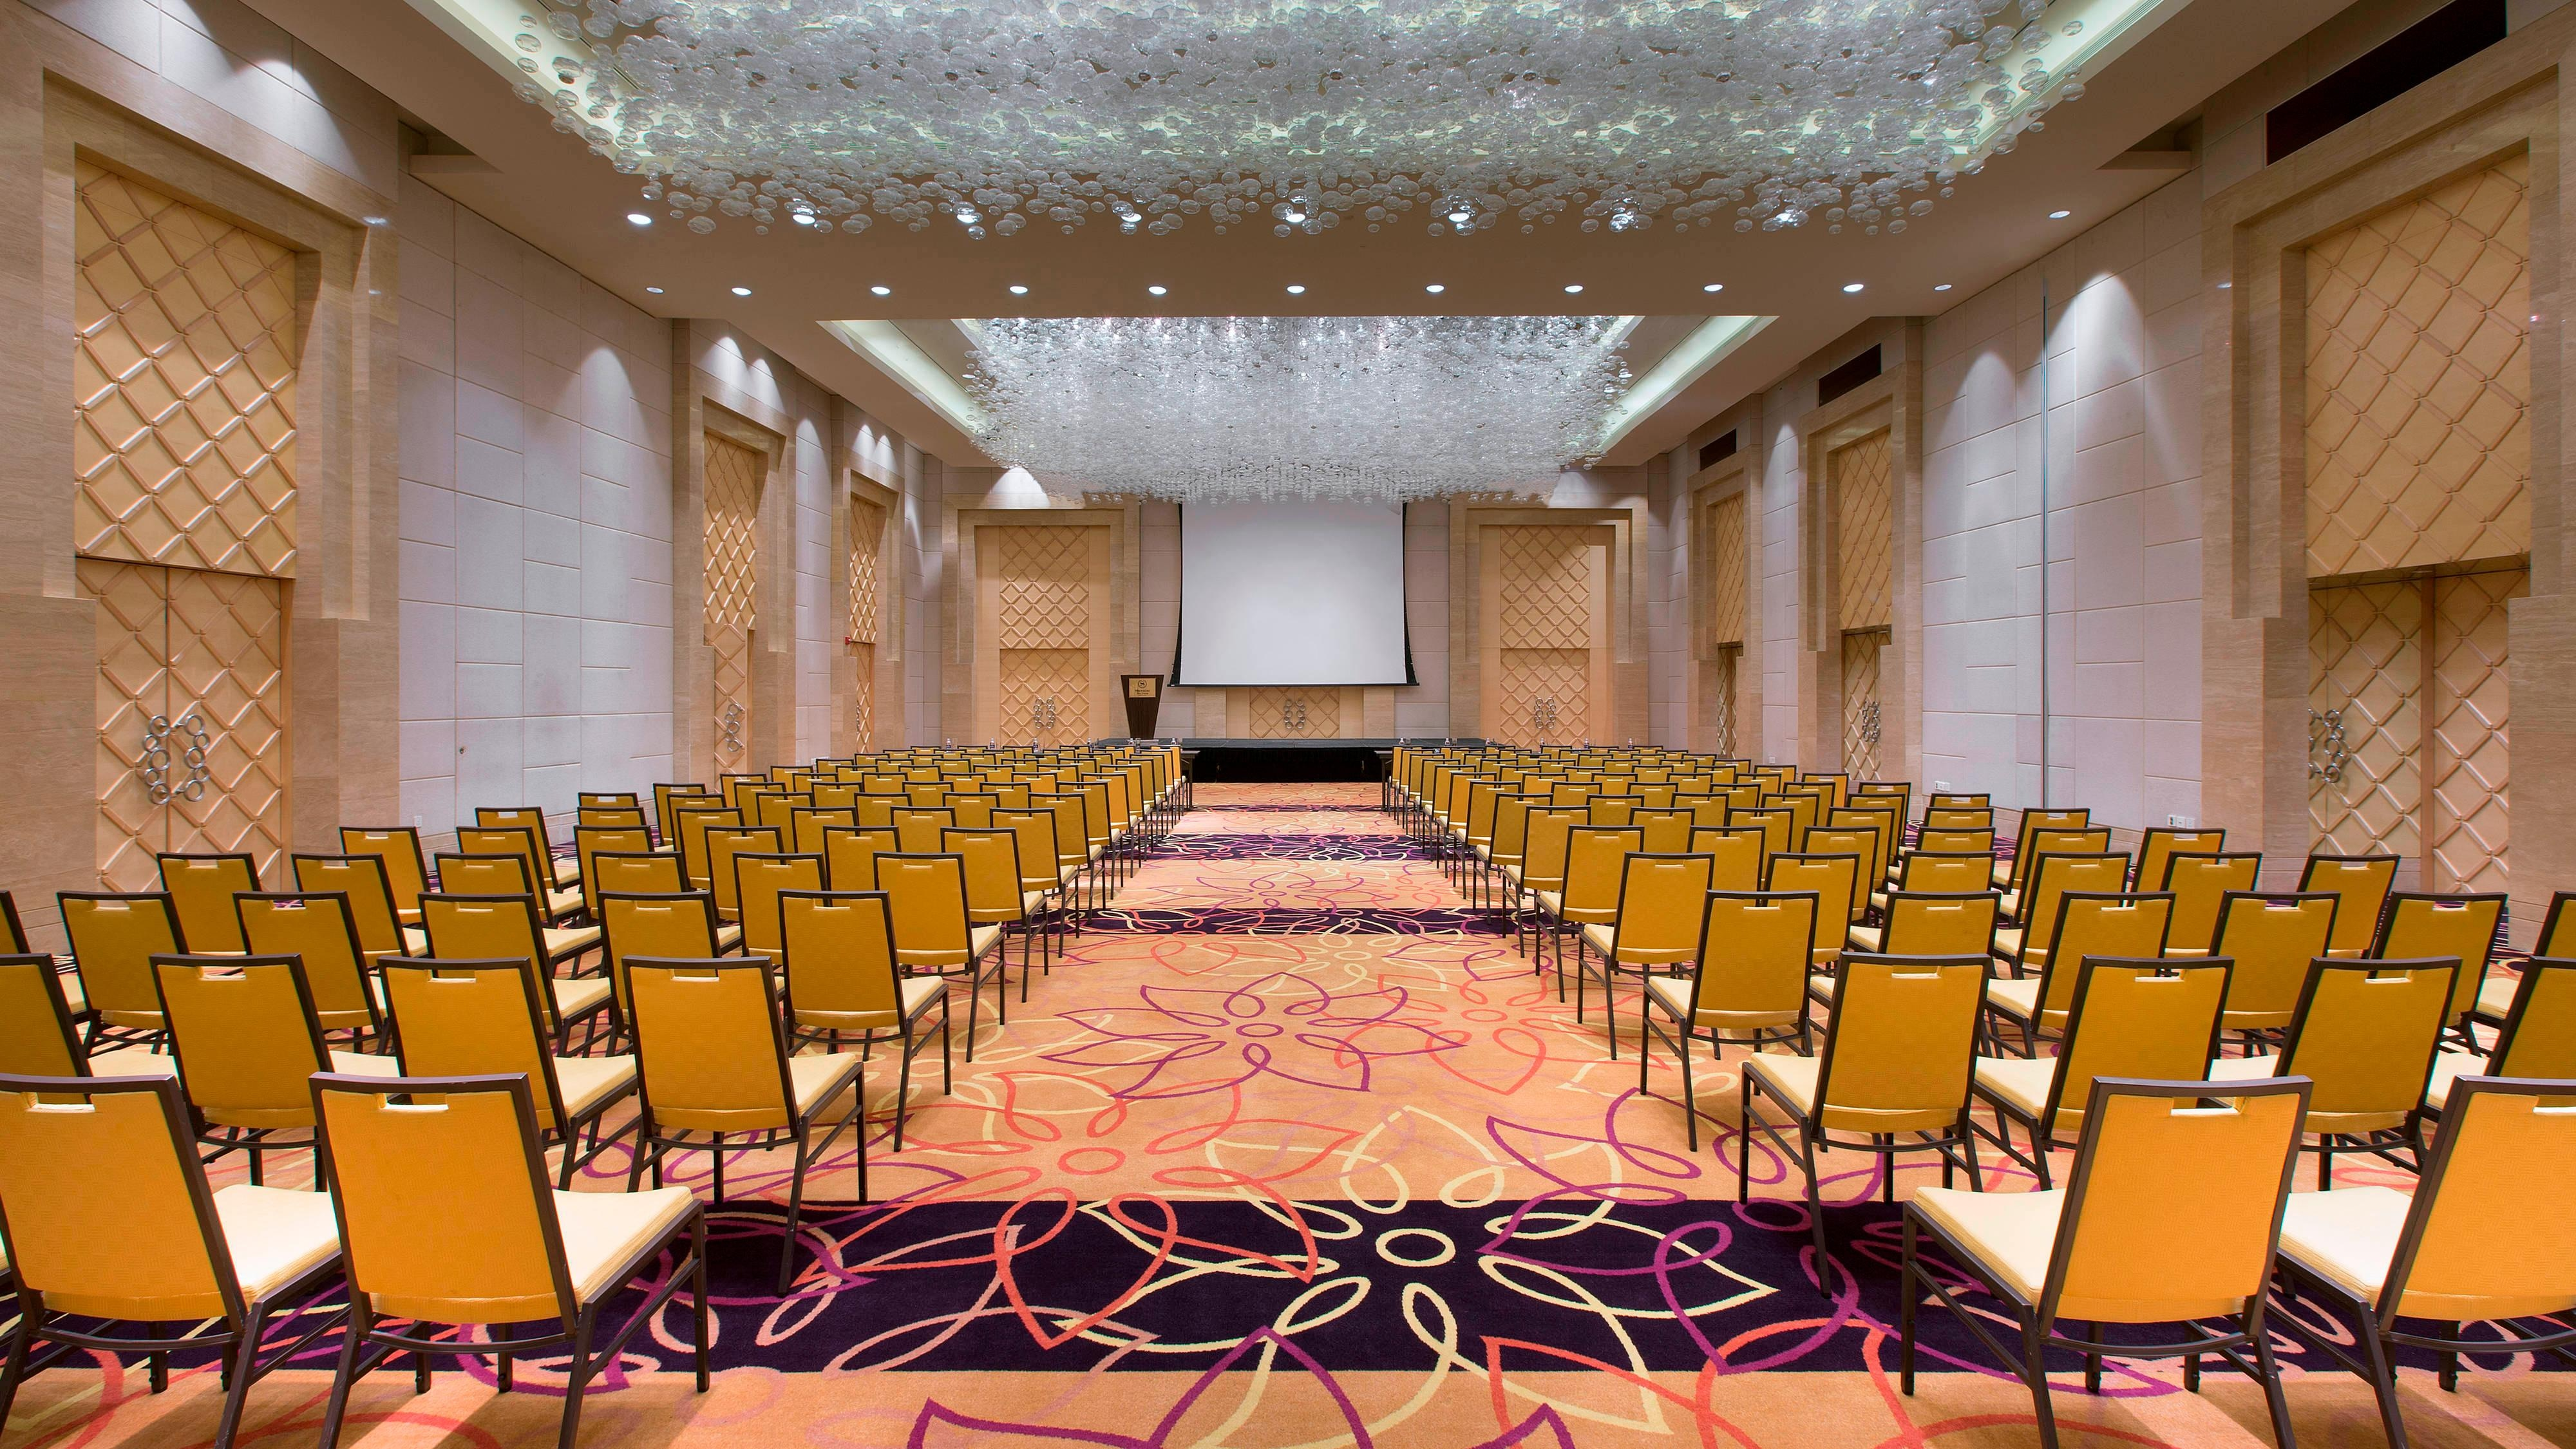 Meeting Space & Event Venue In Nha Trang City